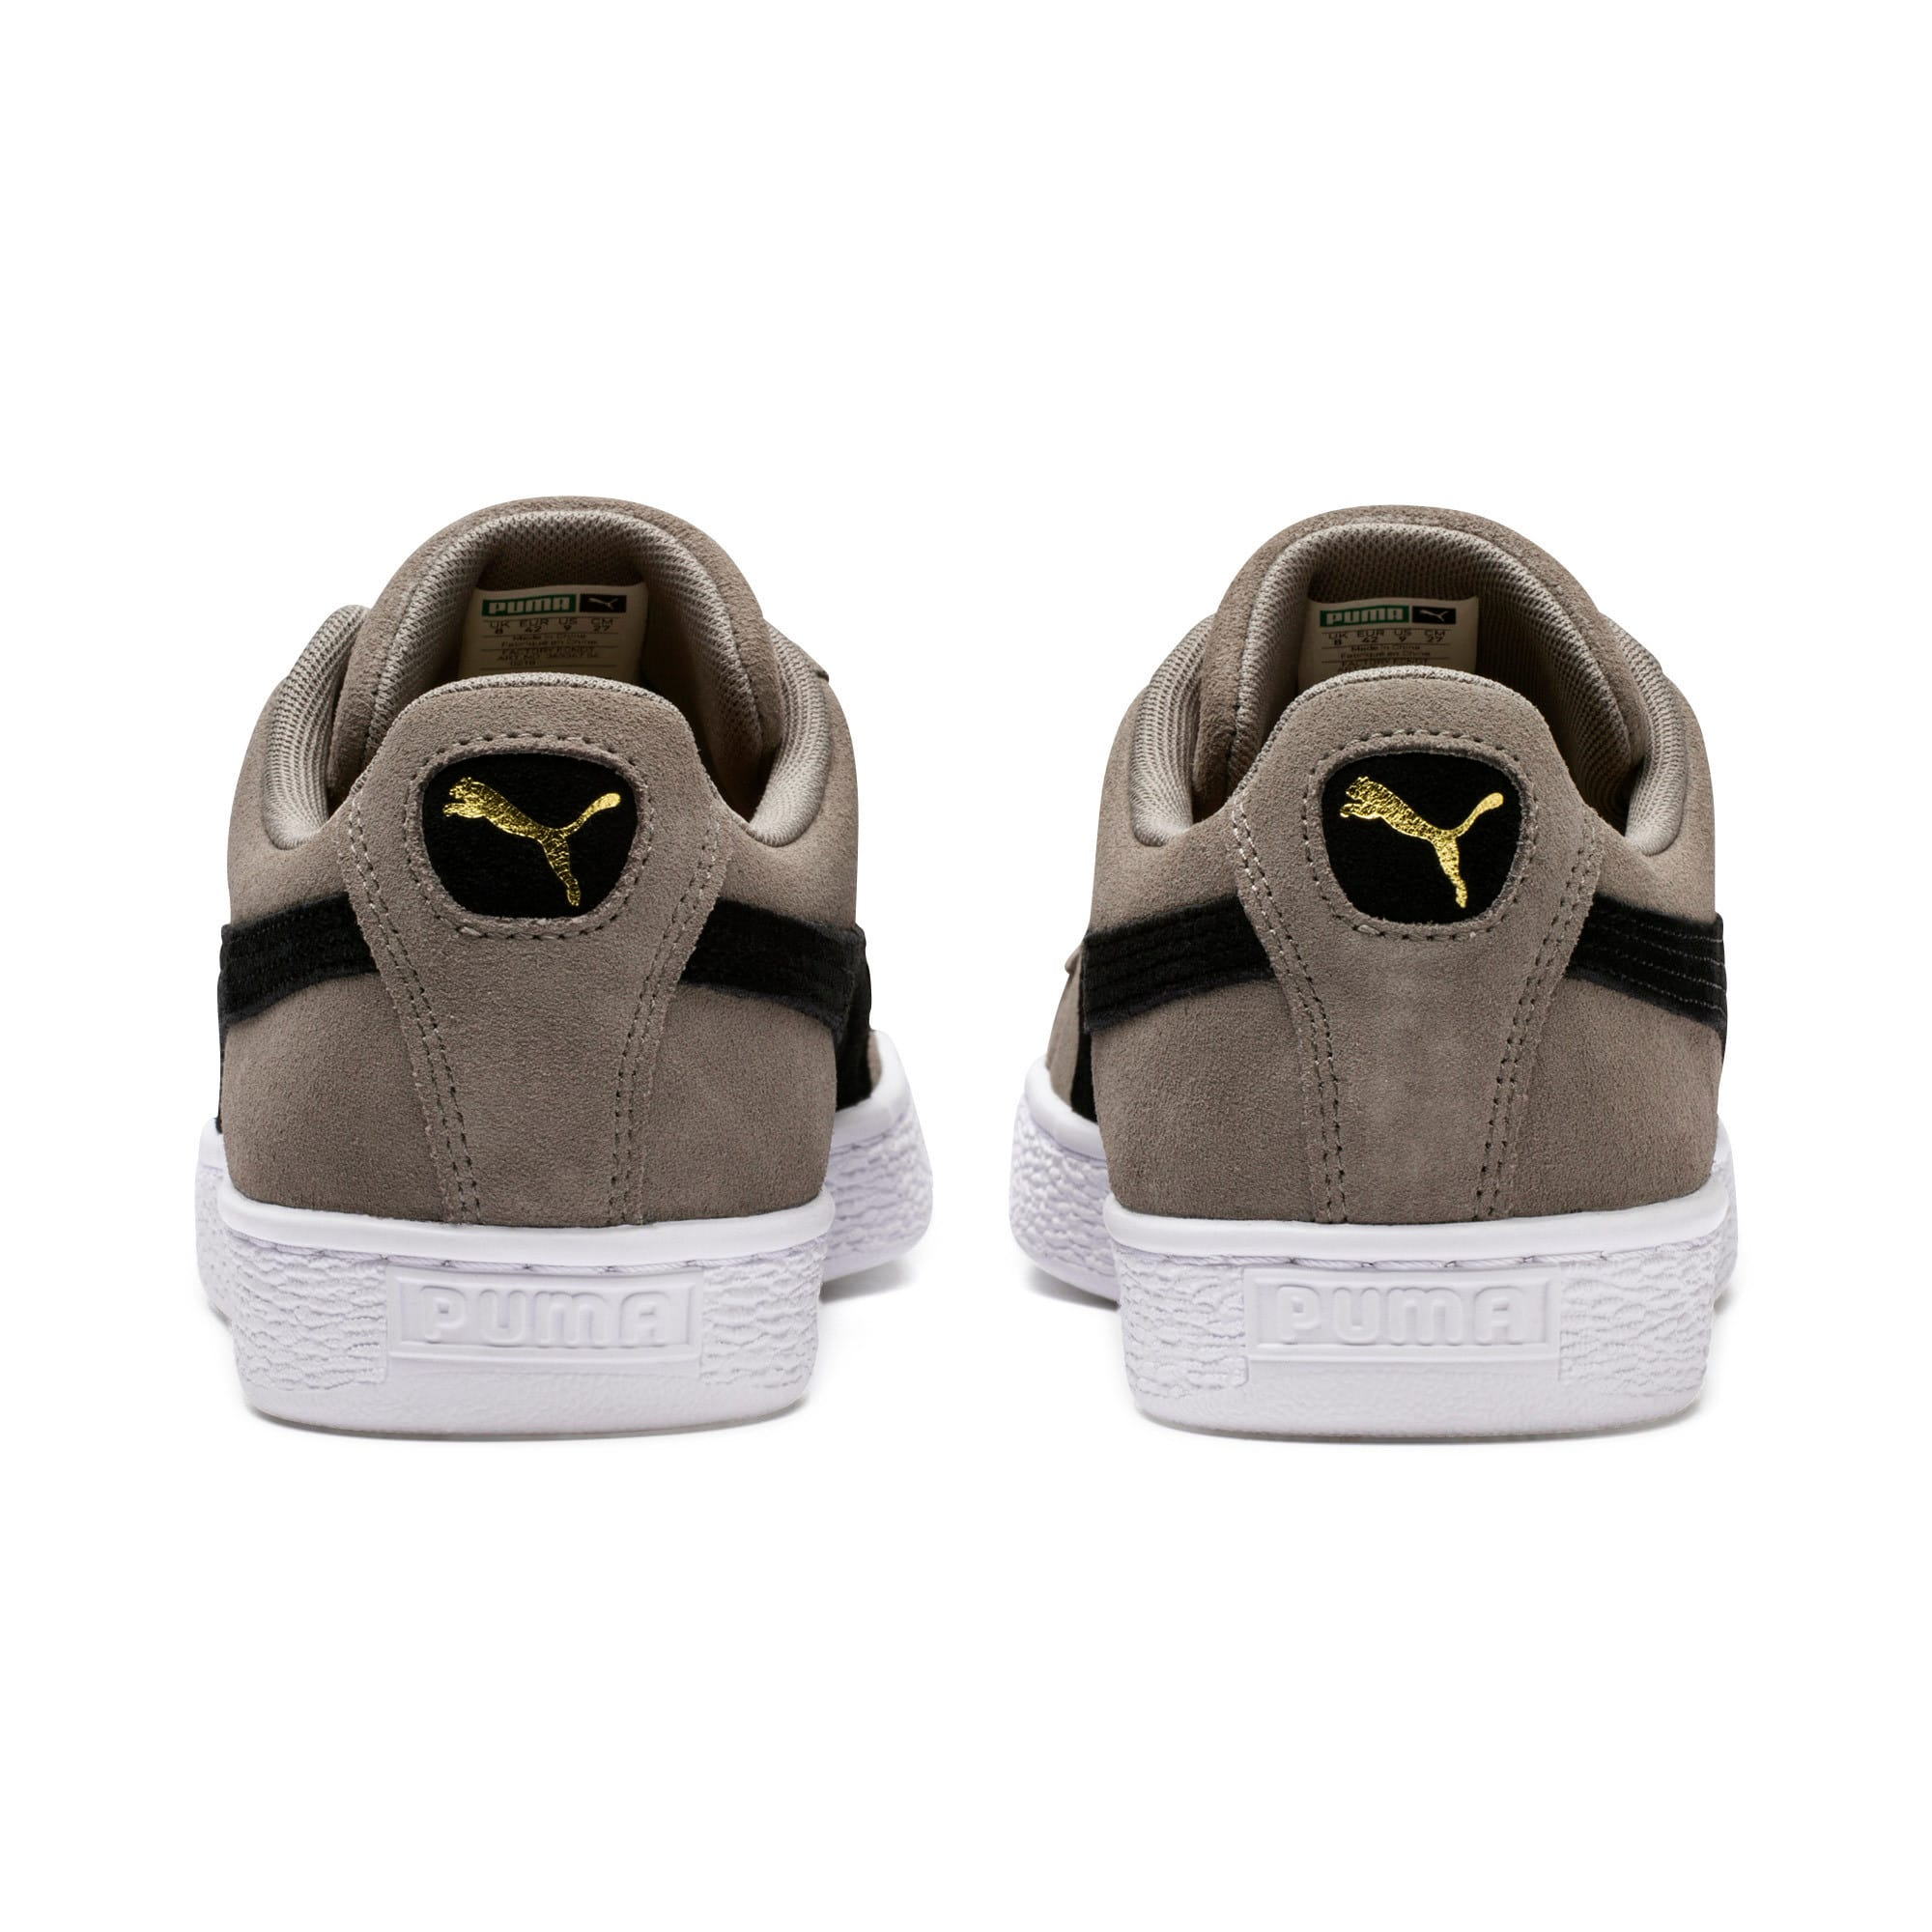 Thumbnail 3 of Suede Classic Trainers, Charcoal Gray-Puma Black, medium